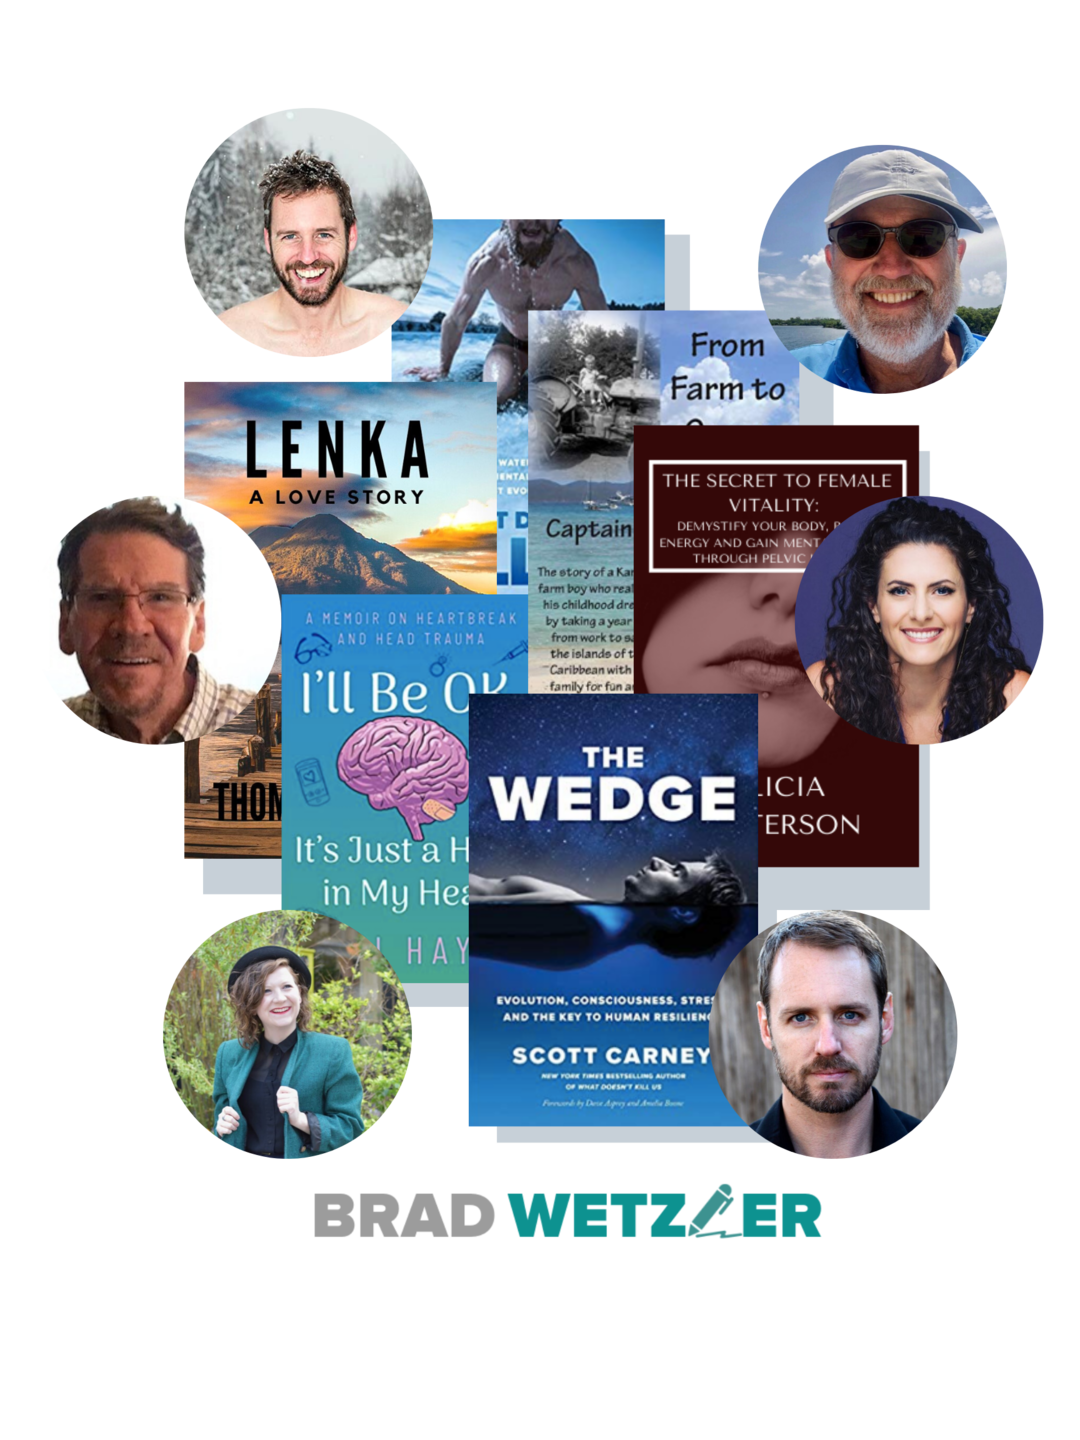 brad wetzler client and their published books